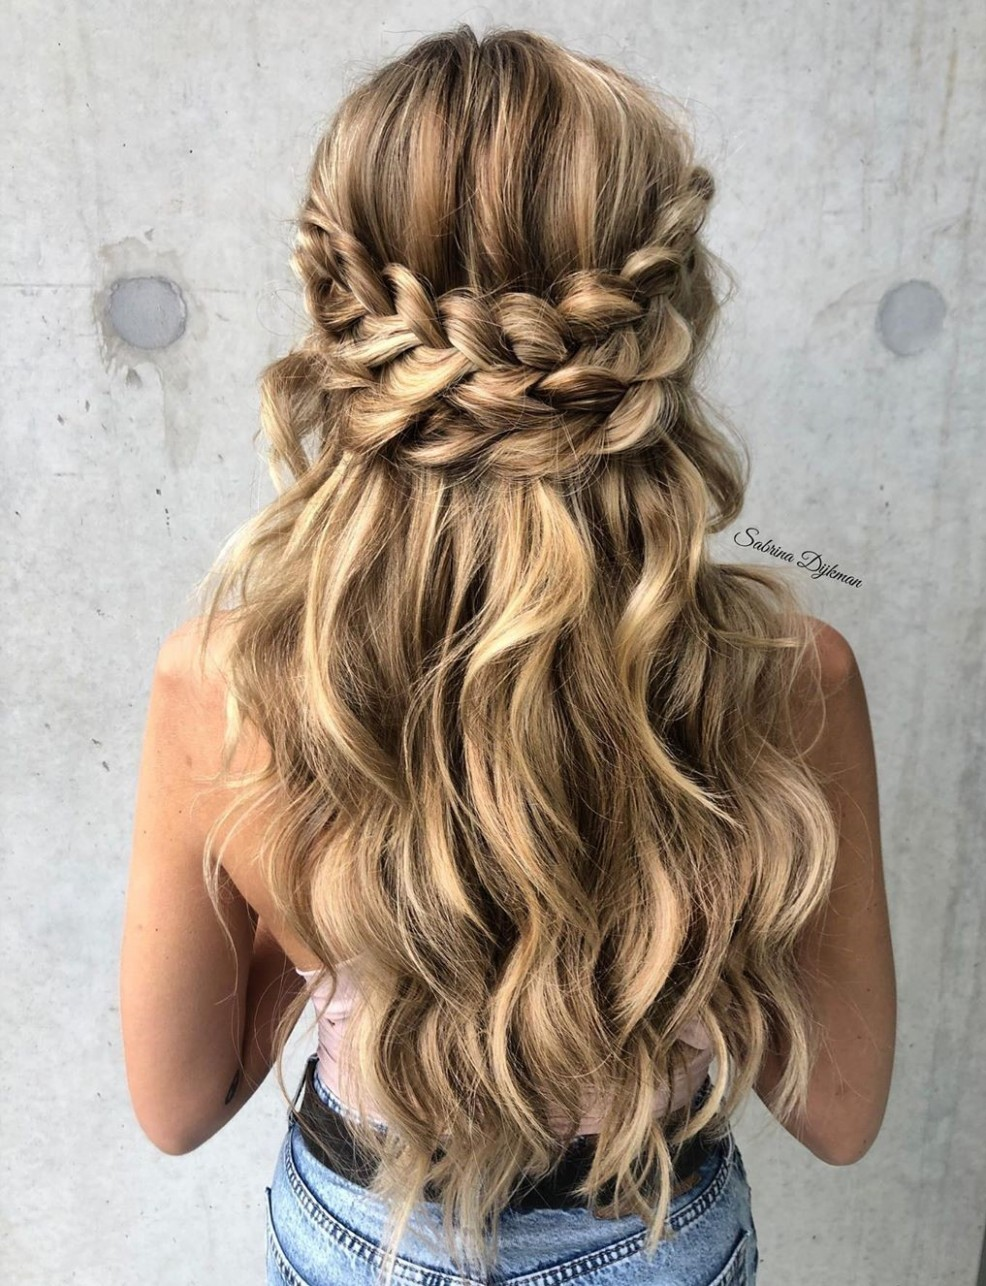 12 Easy Hairstyles For Long Hair With Simple Instructions Hair Easy Hairstyles For Girls Long Hair